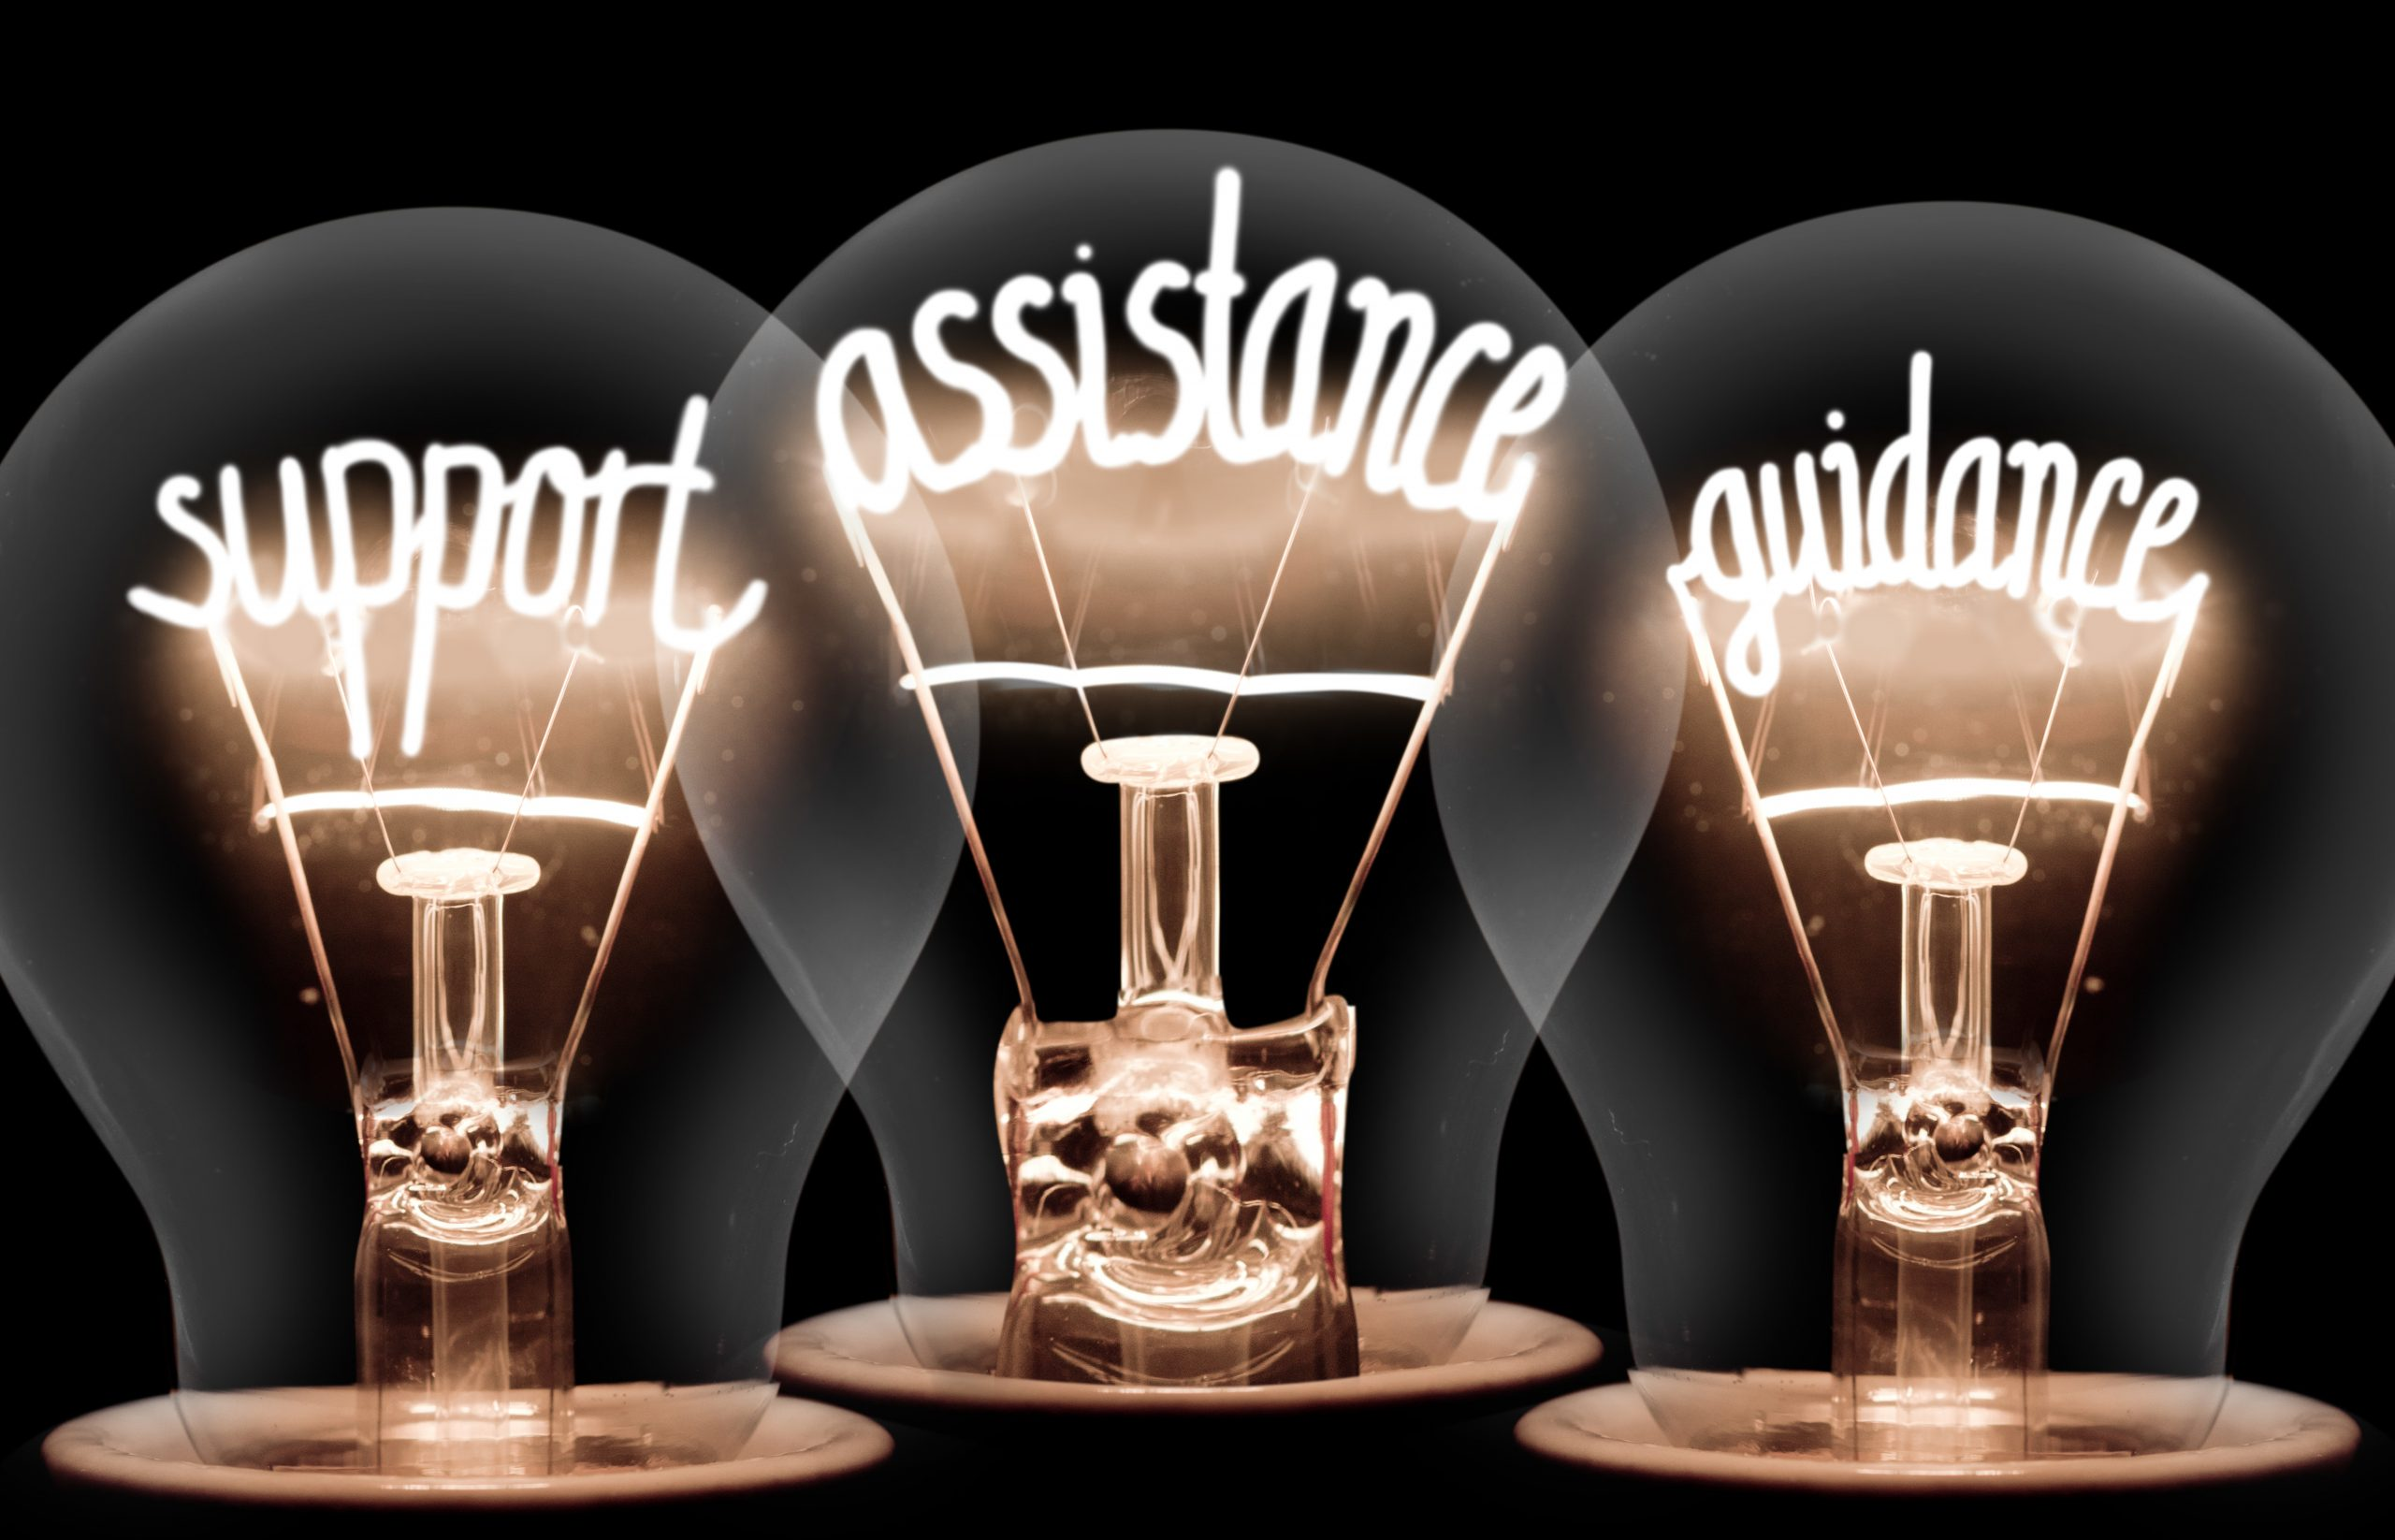 supporto, assistenza, consulenza Lighting Design srl